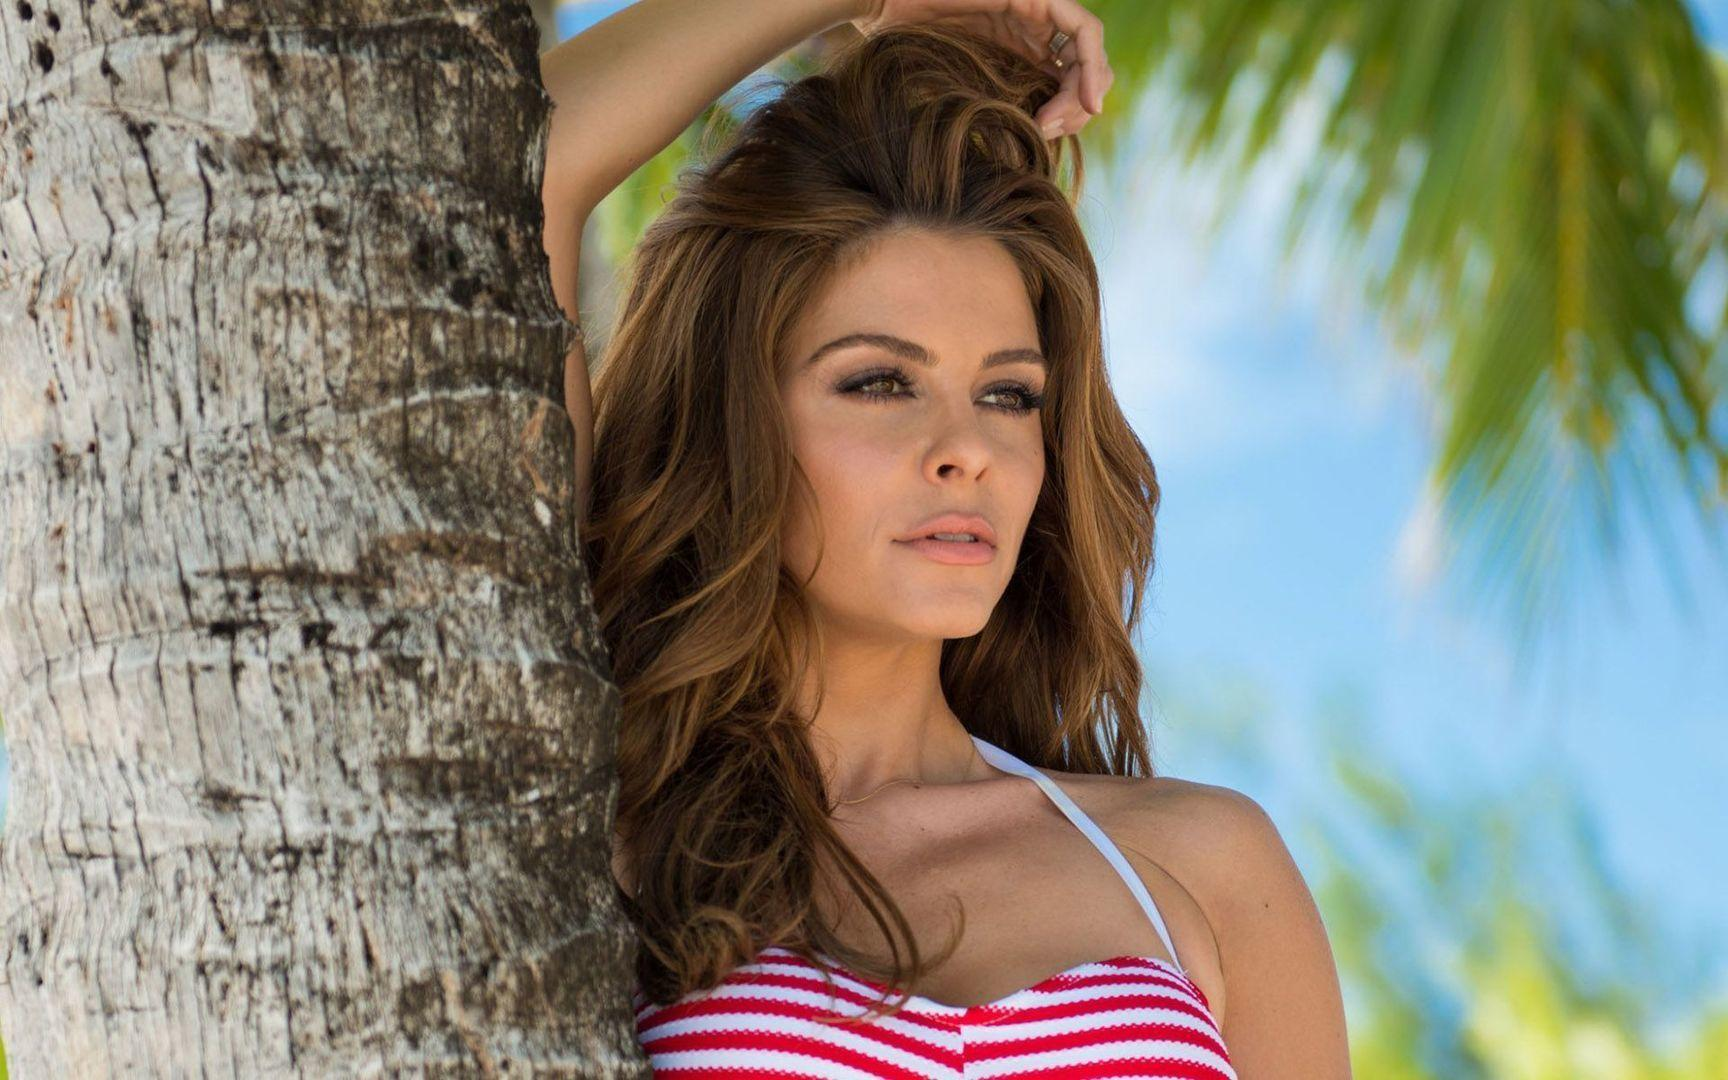 maria menounos Wallpapers HD Wallpapers